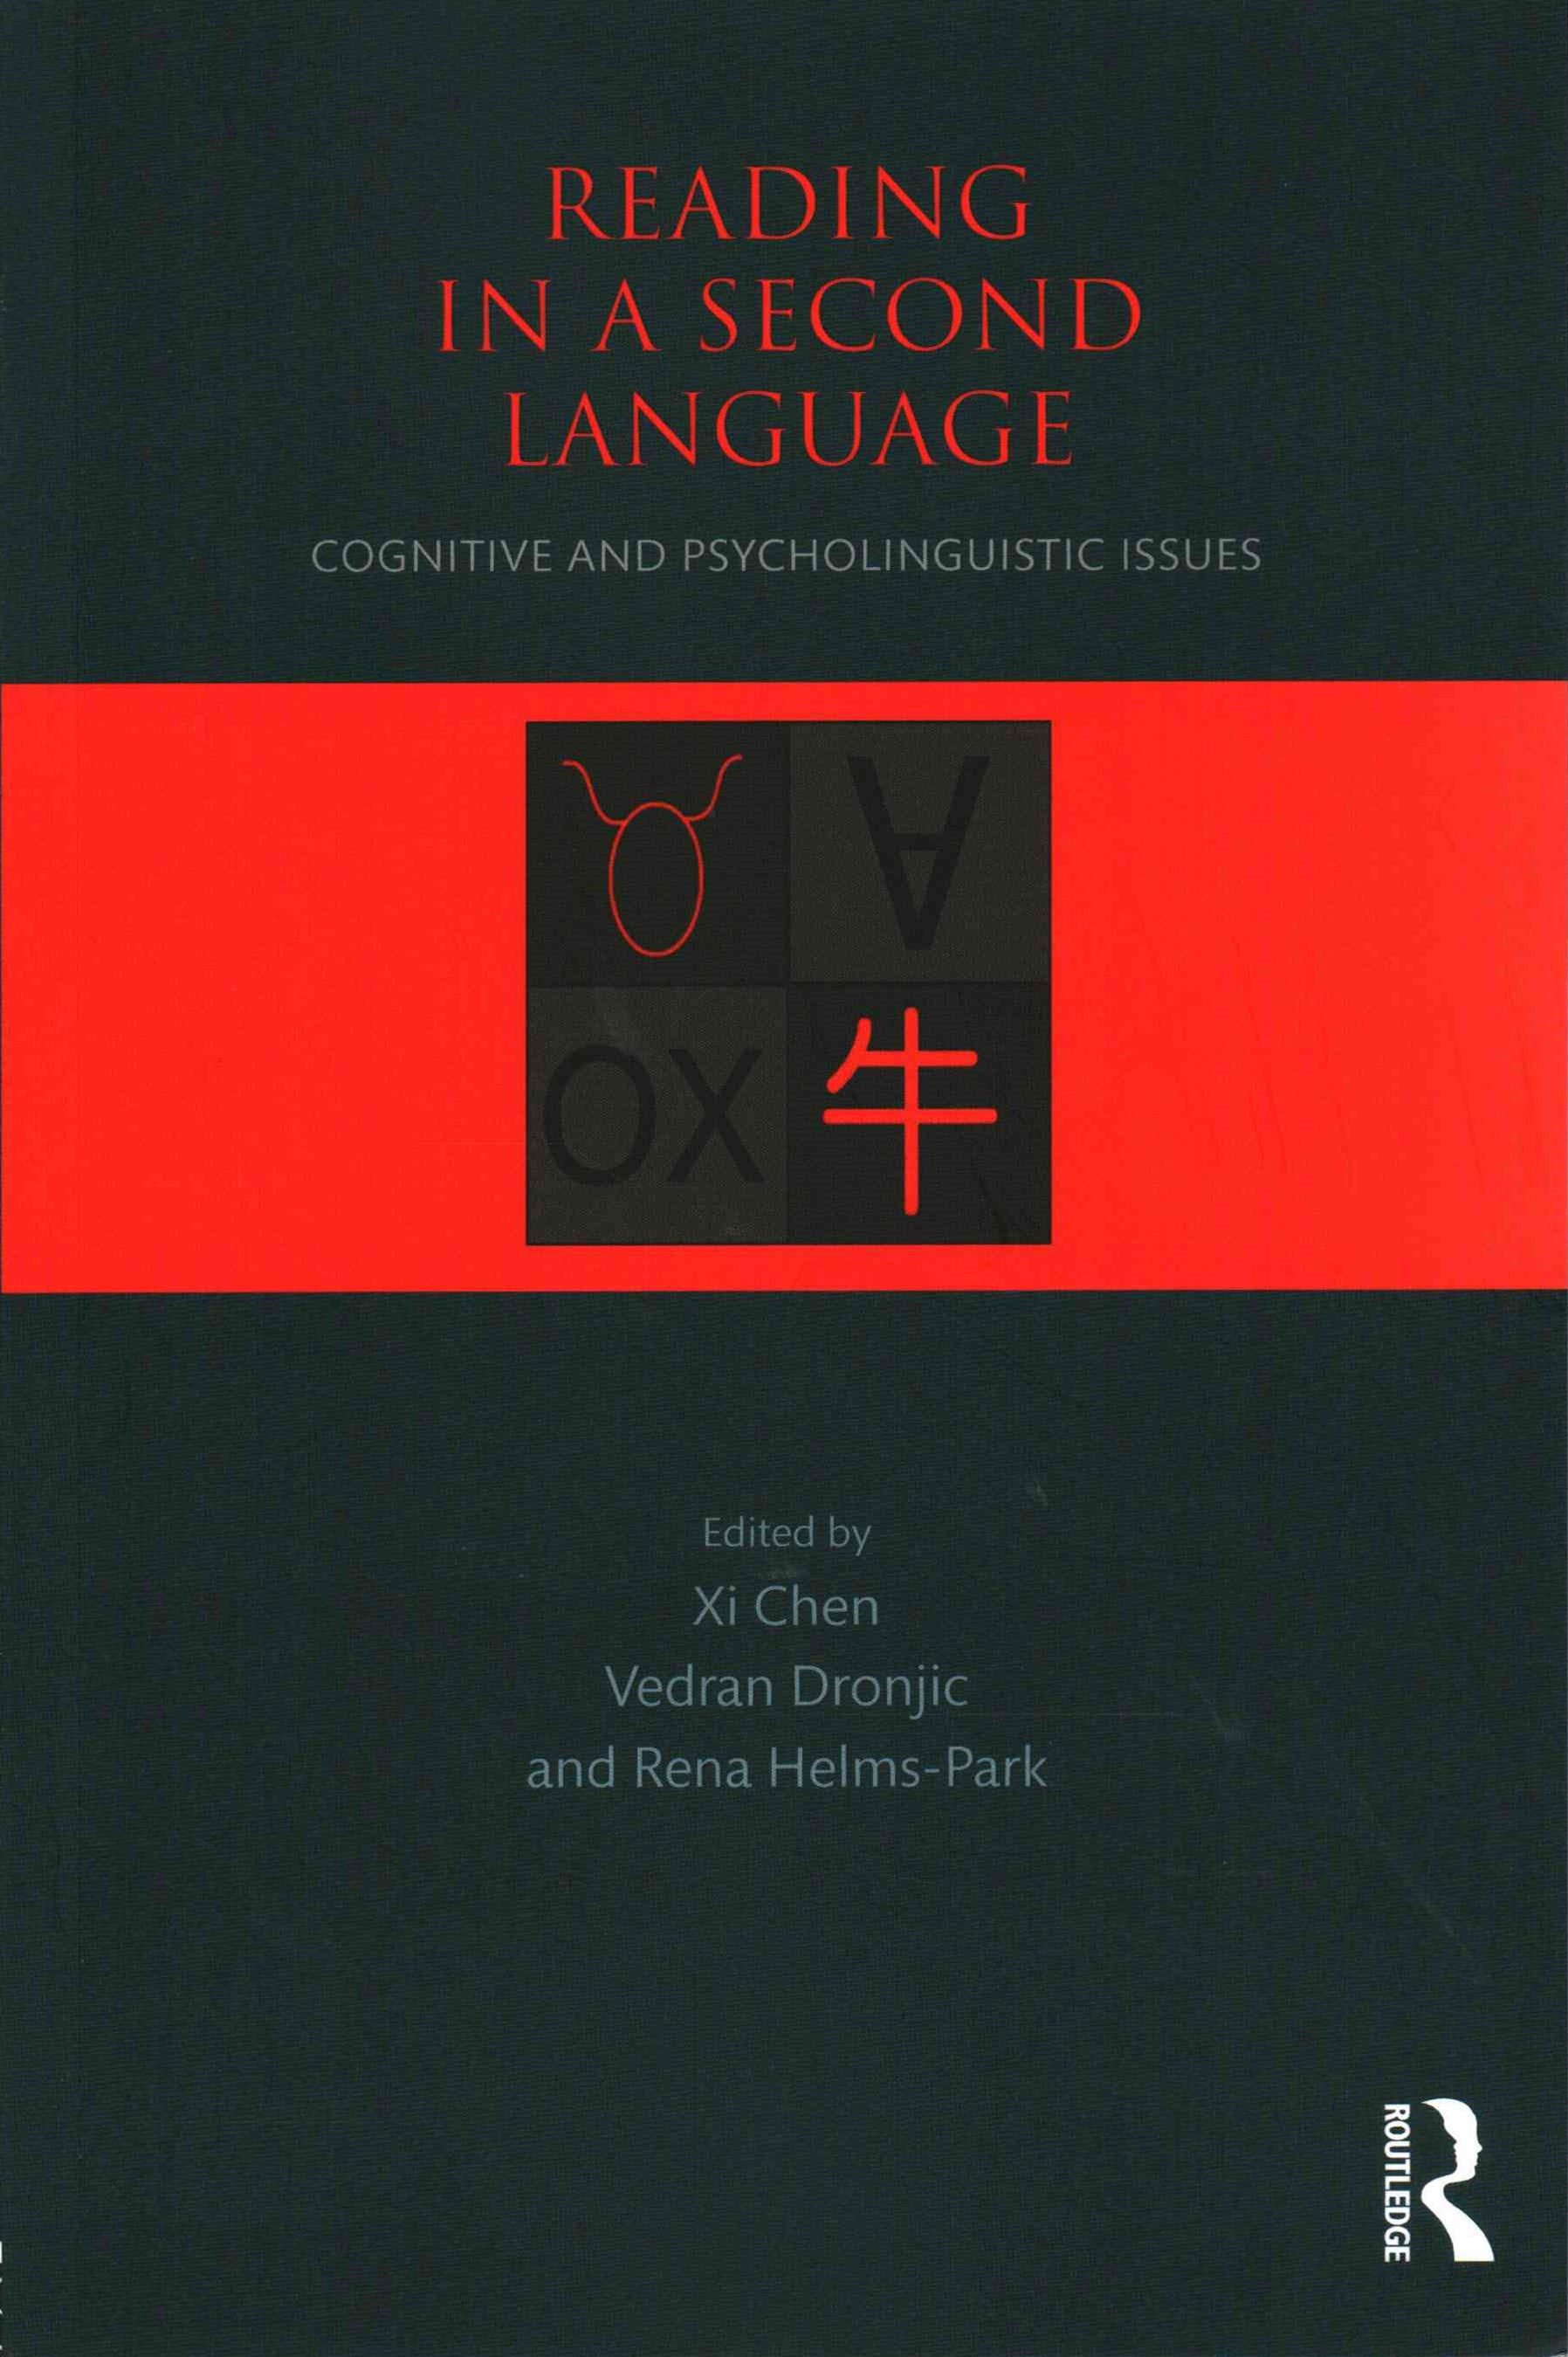 Reading in a Second Language